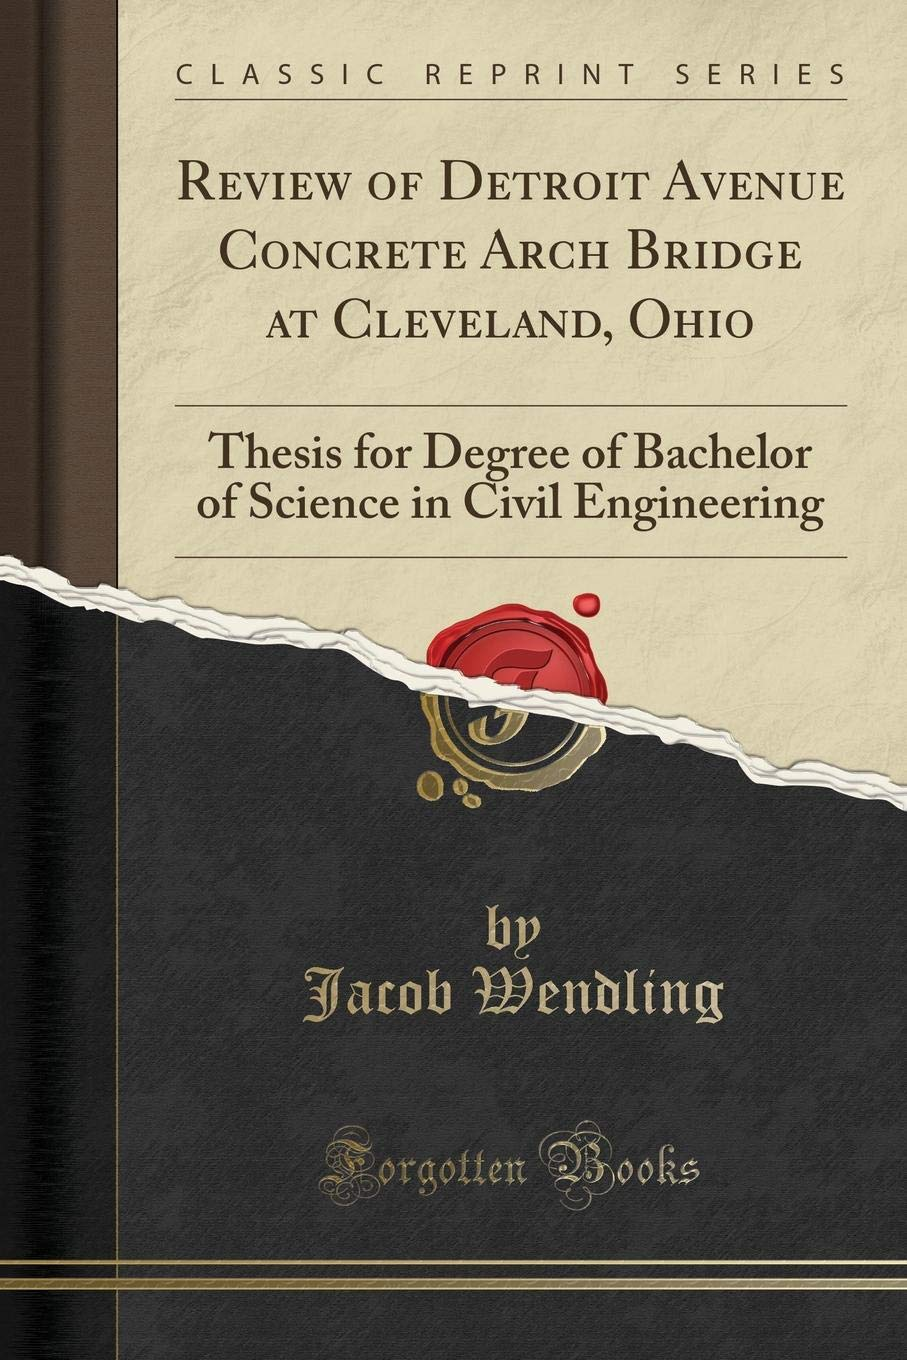 Review of Detroit Avenue Concrete Arch Bridge at Cleveland, Ohio: Thesis for Degree of Bachelor of Science in Civil Engineering (Classic Reprint) pdf